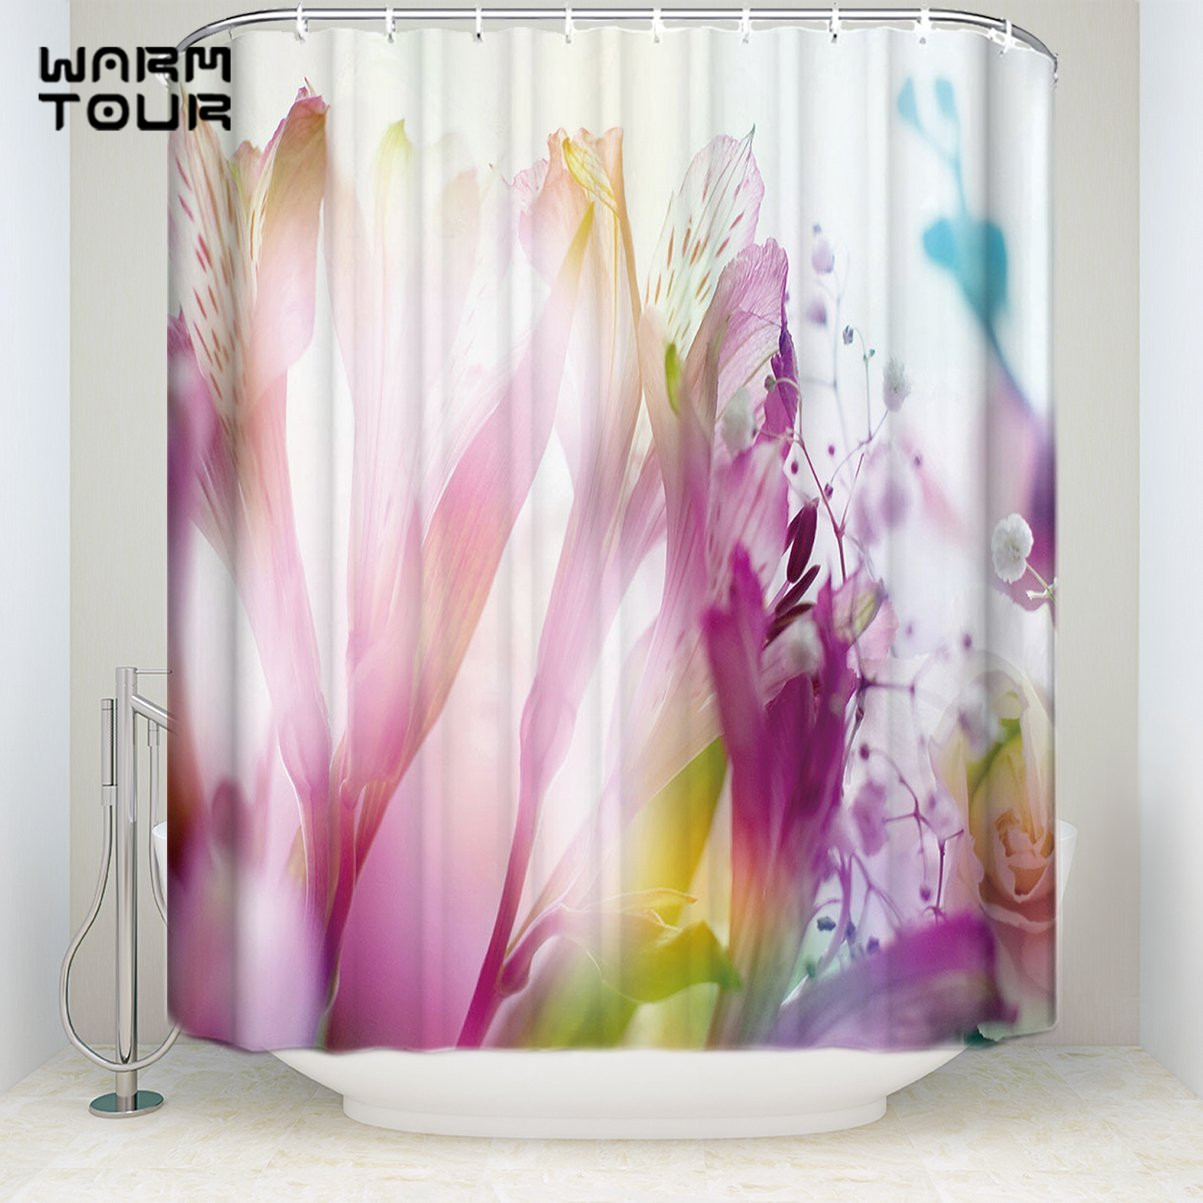 Us 16 23 30 Off Extra Long Fabric Bath Shower Curtains 36 X 78 Inches Abstract Gradient Flowers Mildew Resistant Bathroom Decor Sets With Hooks In